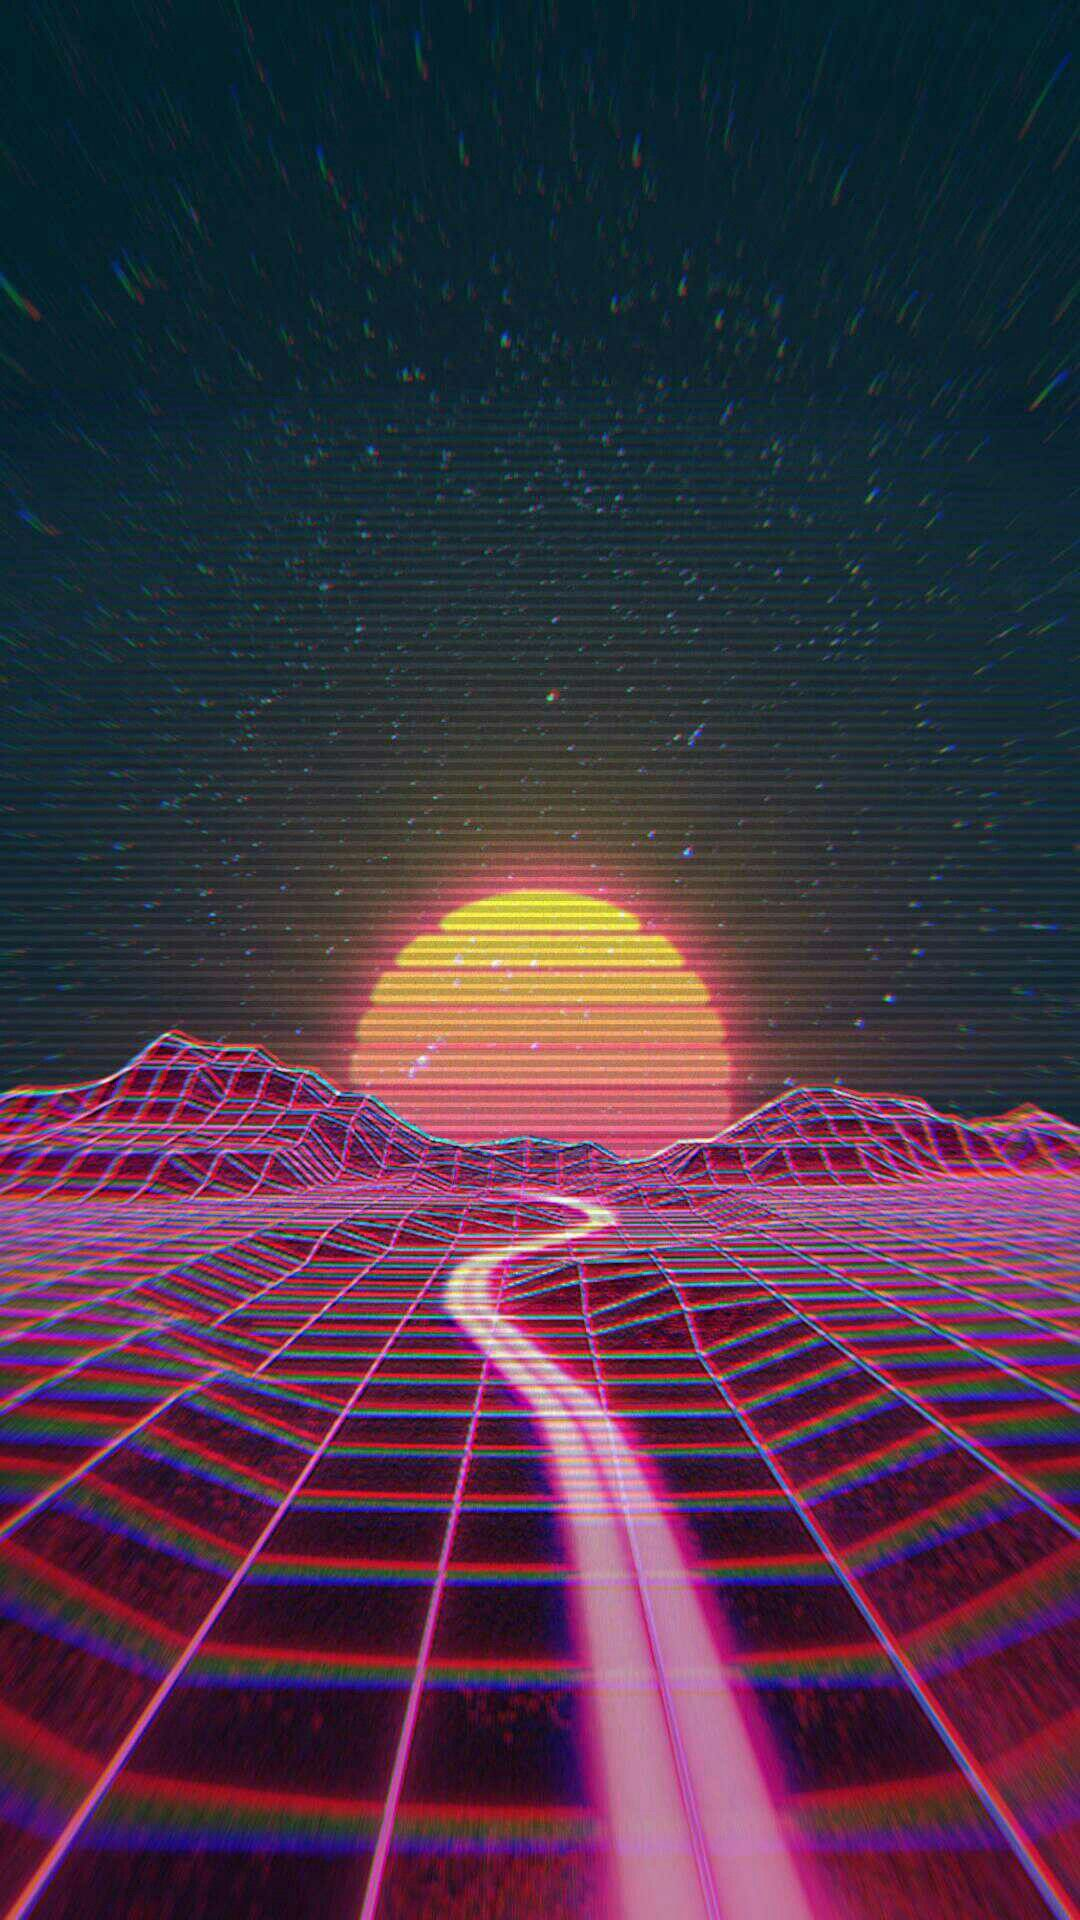 æighties æsthetic | My asthetic in 2019 | Pinterest | Iphone wallpaper, Wallpaper and Vaporwave ...